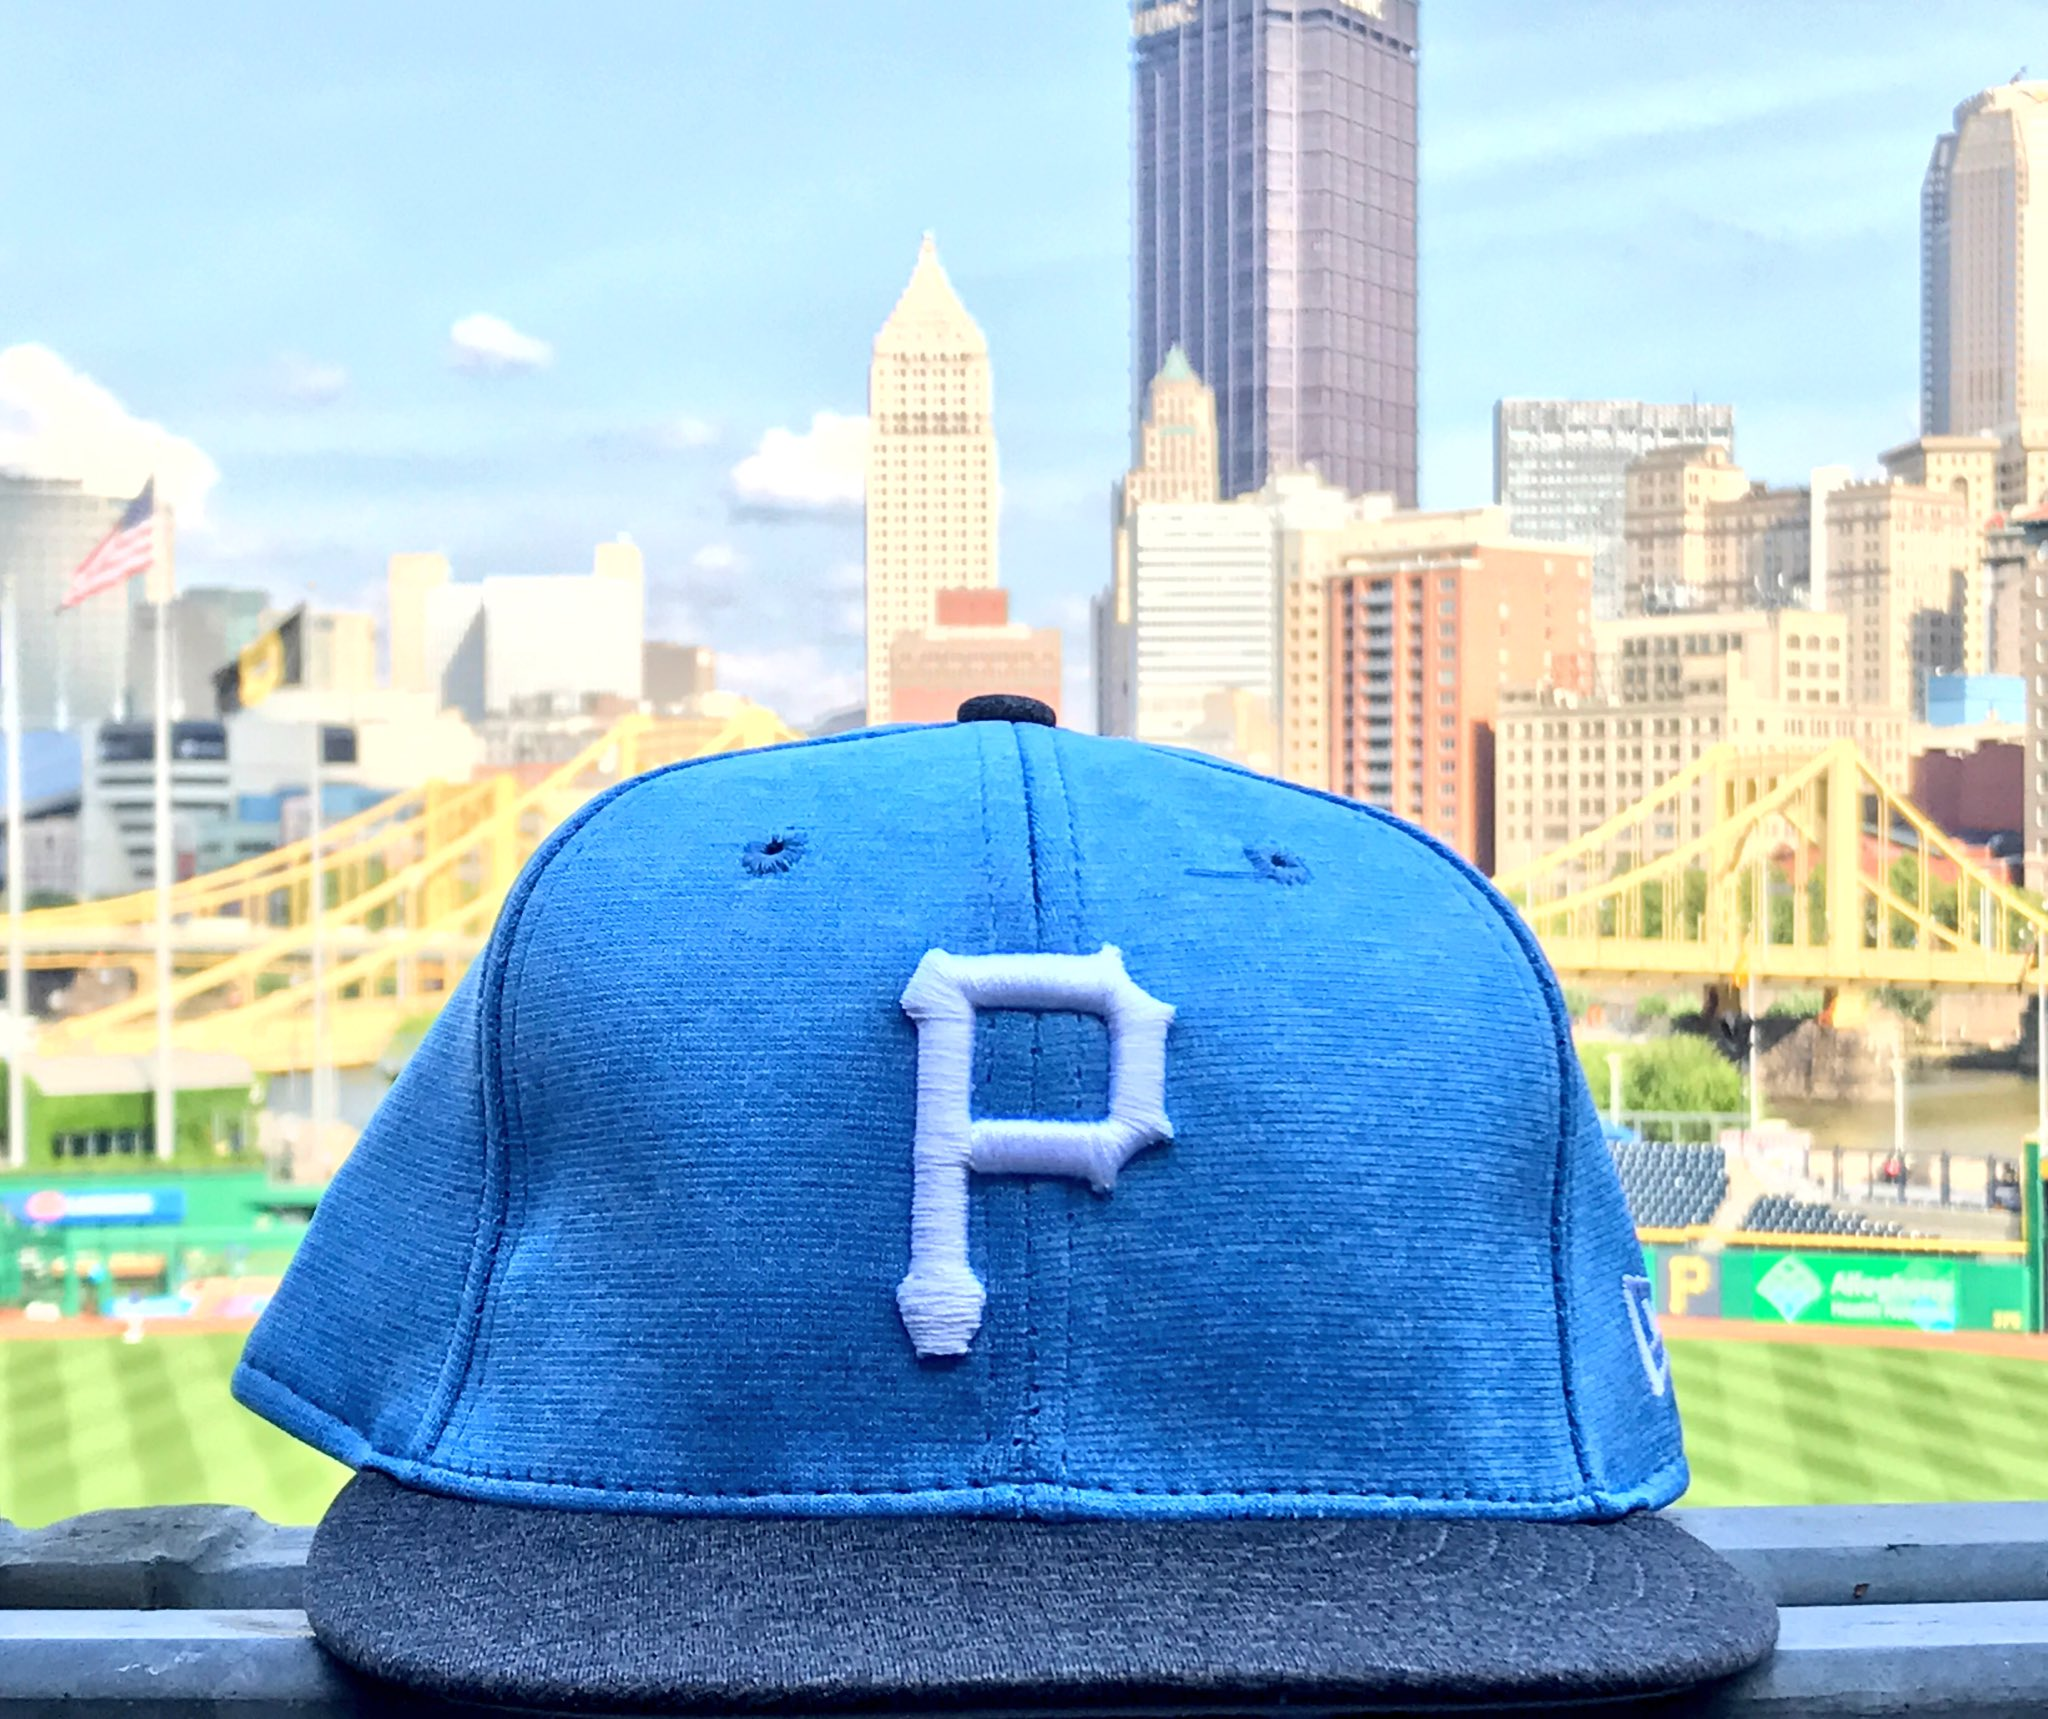 RETWEET THIS now for your chance to win one of our #FathersDay caps! https://t.co/YJqYZMUcSF